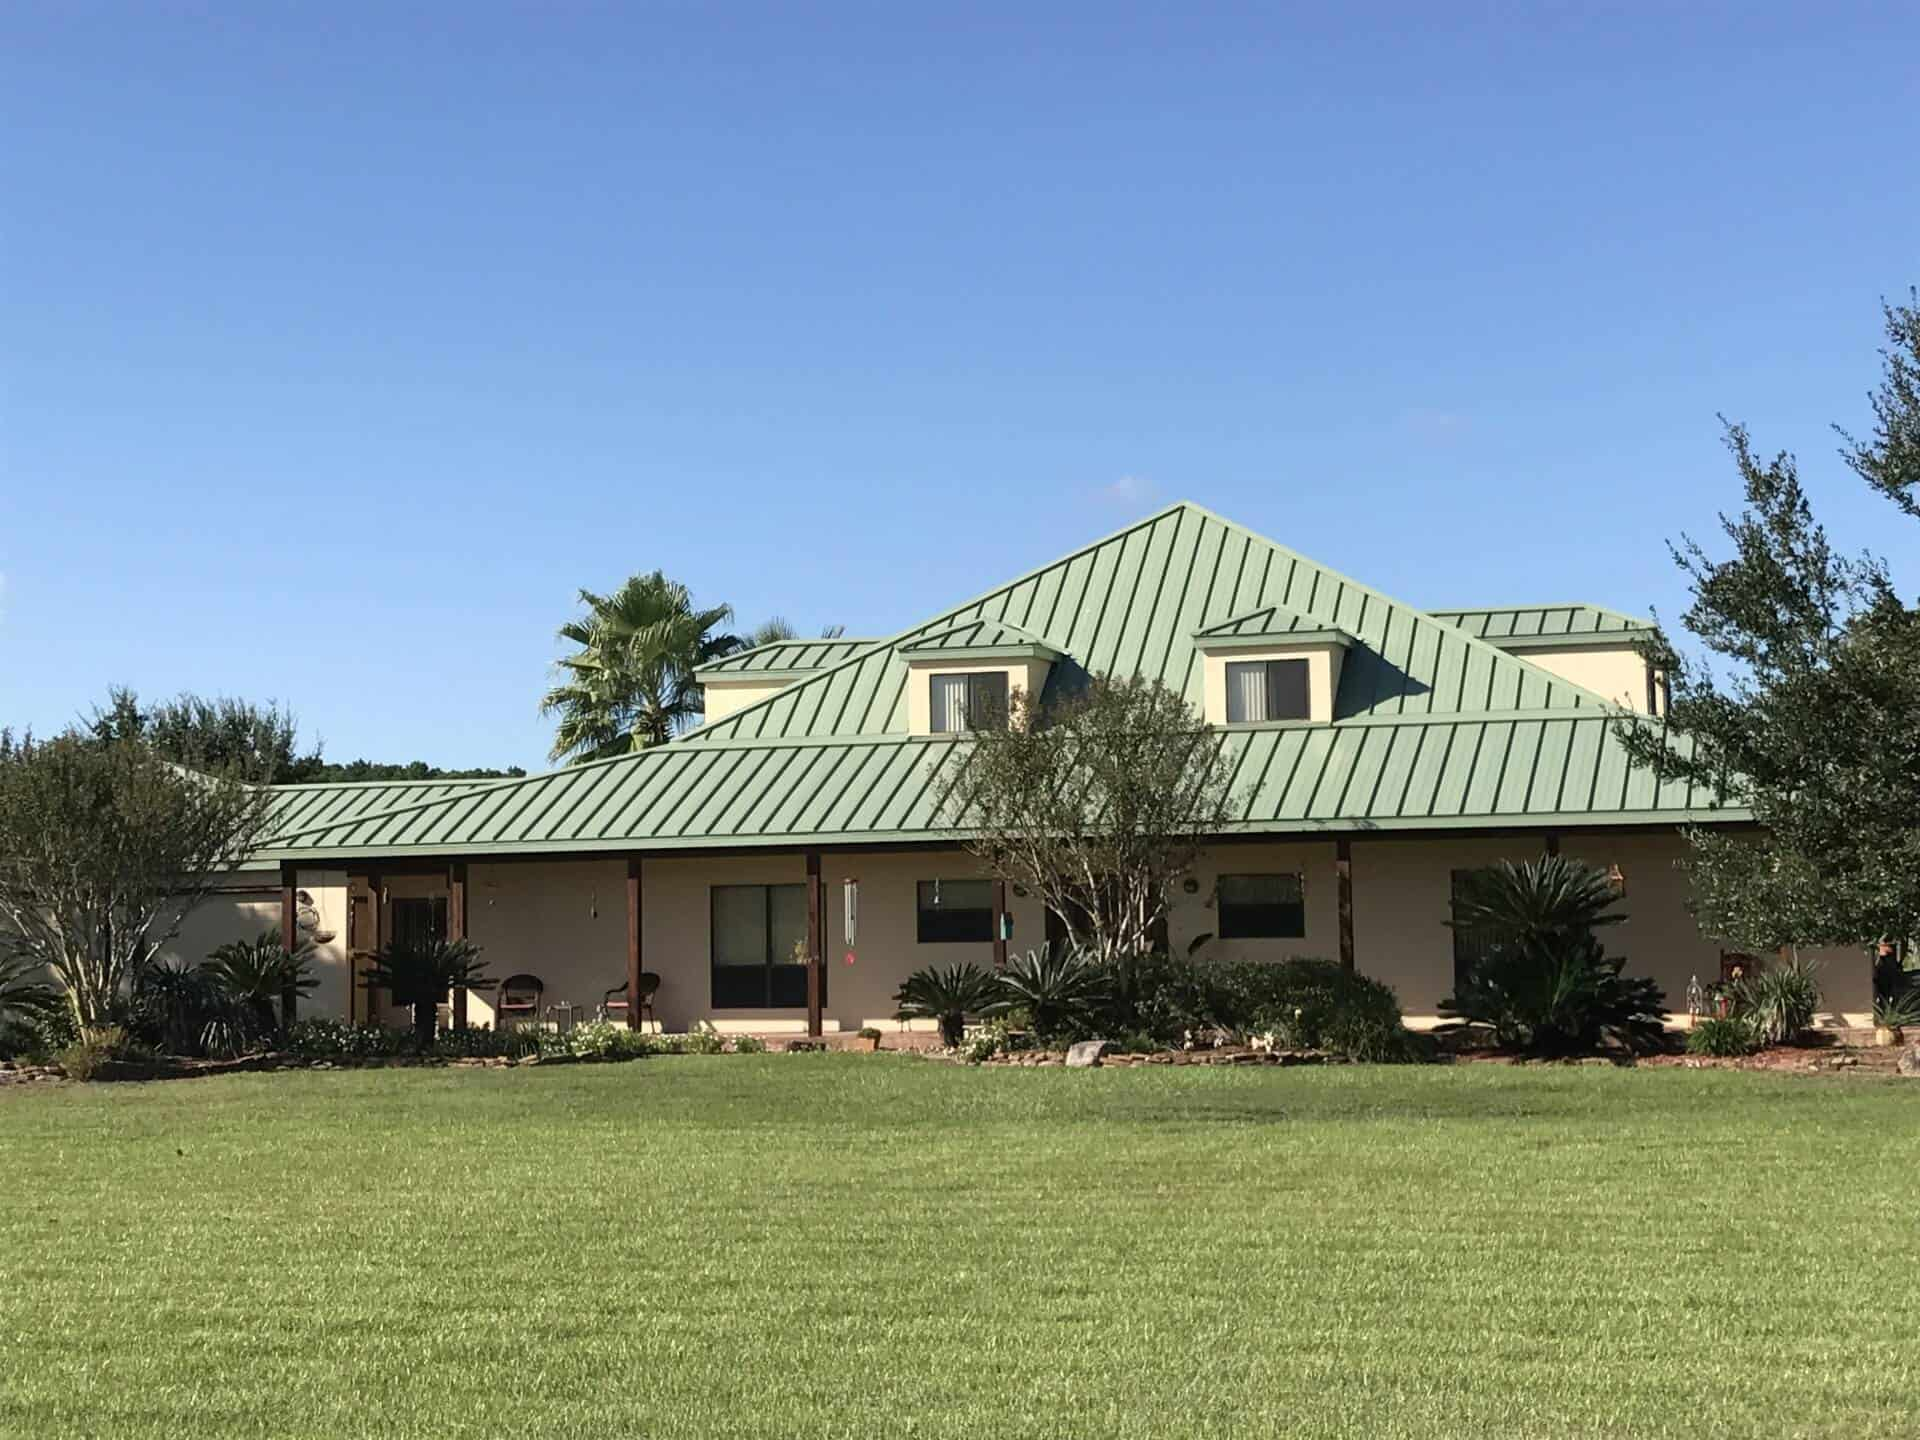 Medallion-Lok Standing Seam Metal Roof - Patina Green